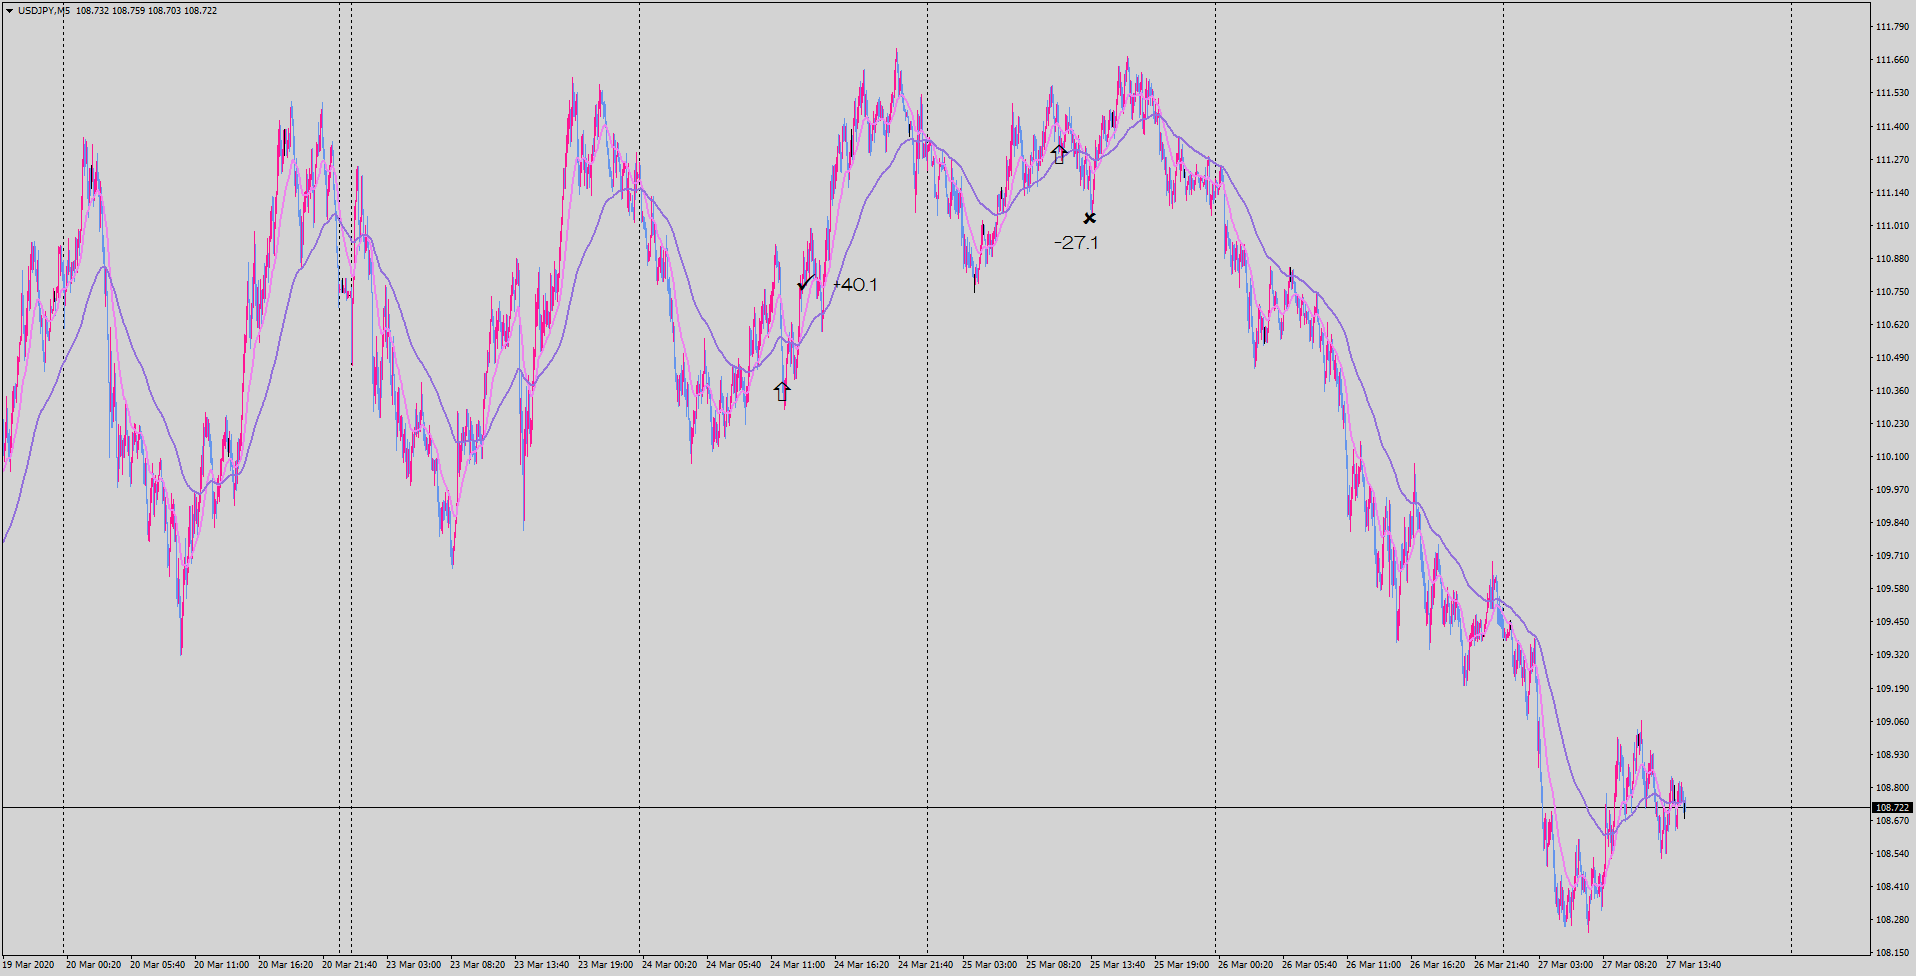 20-03-27-usdjpy-m5-tradexfin-limited.png